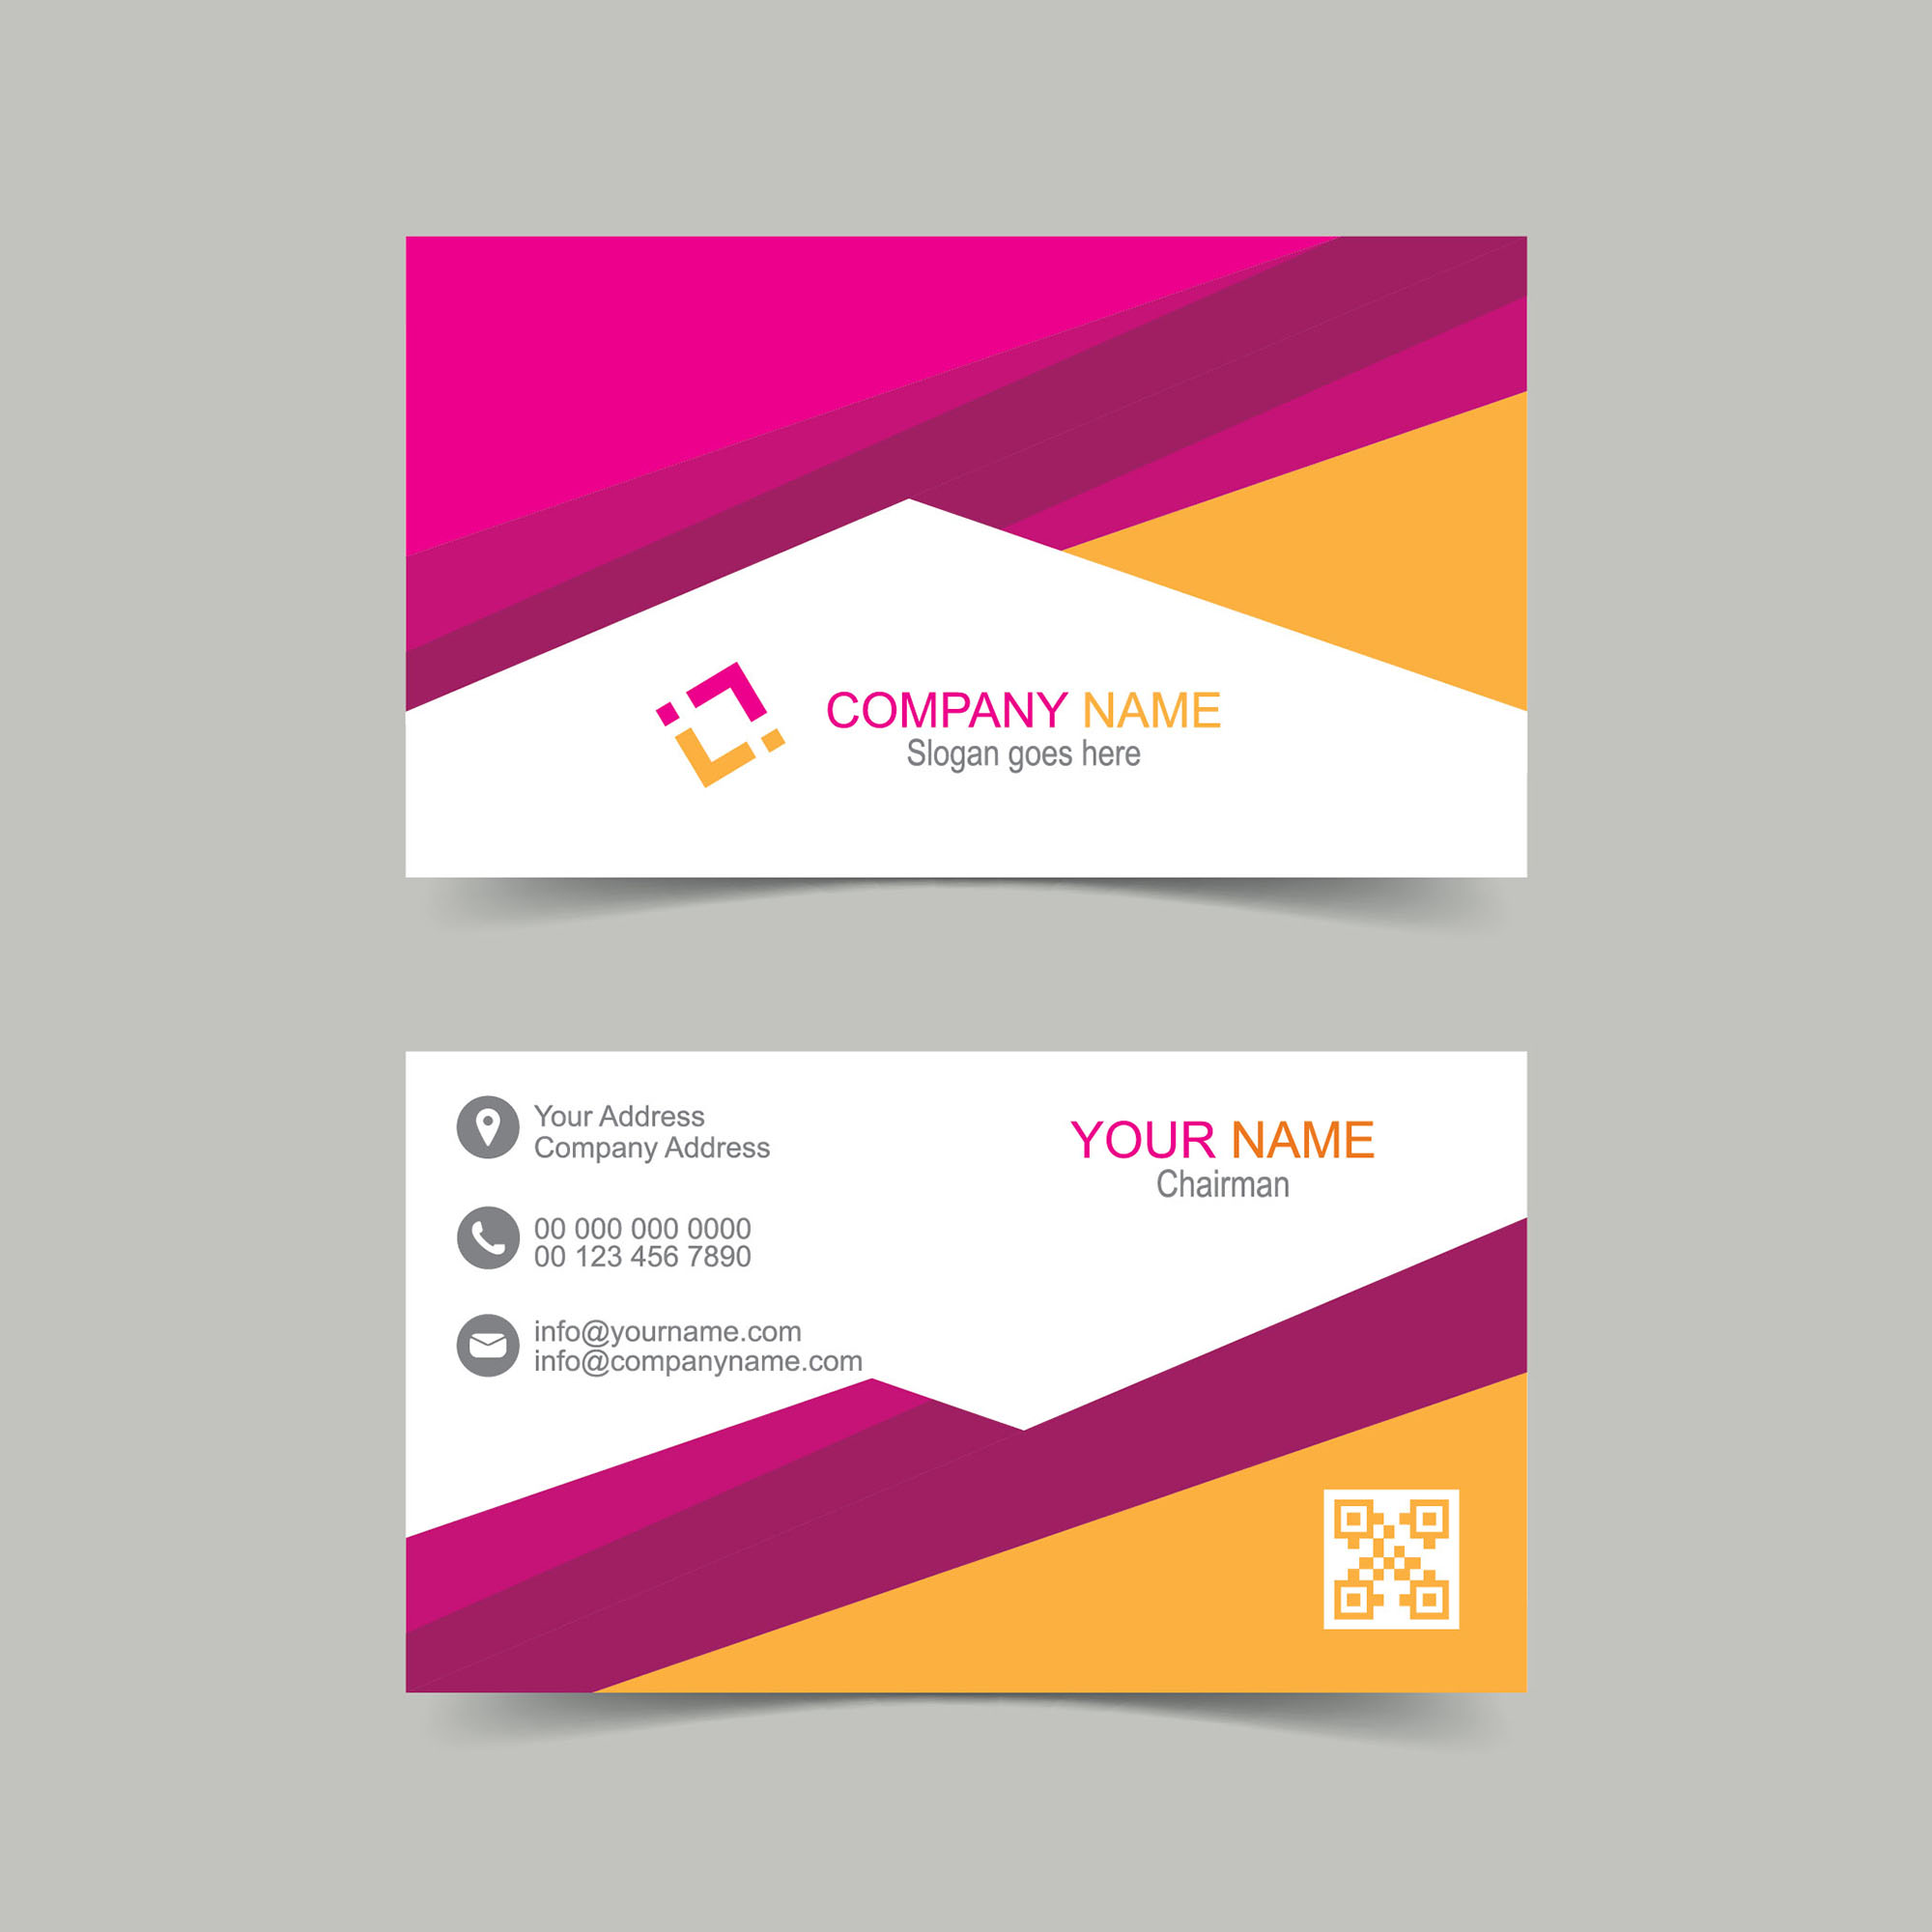 Vector business card design free download wisxi business card business cards business card design business card template design templates reheart Images